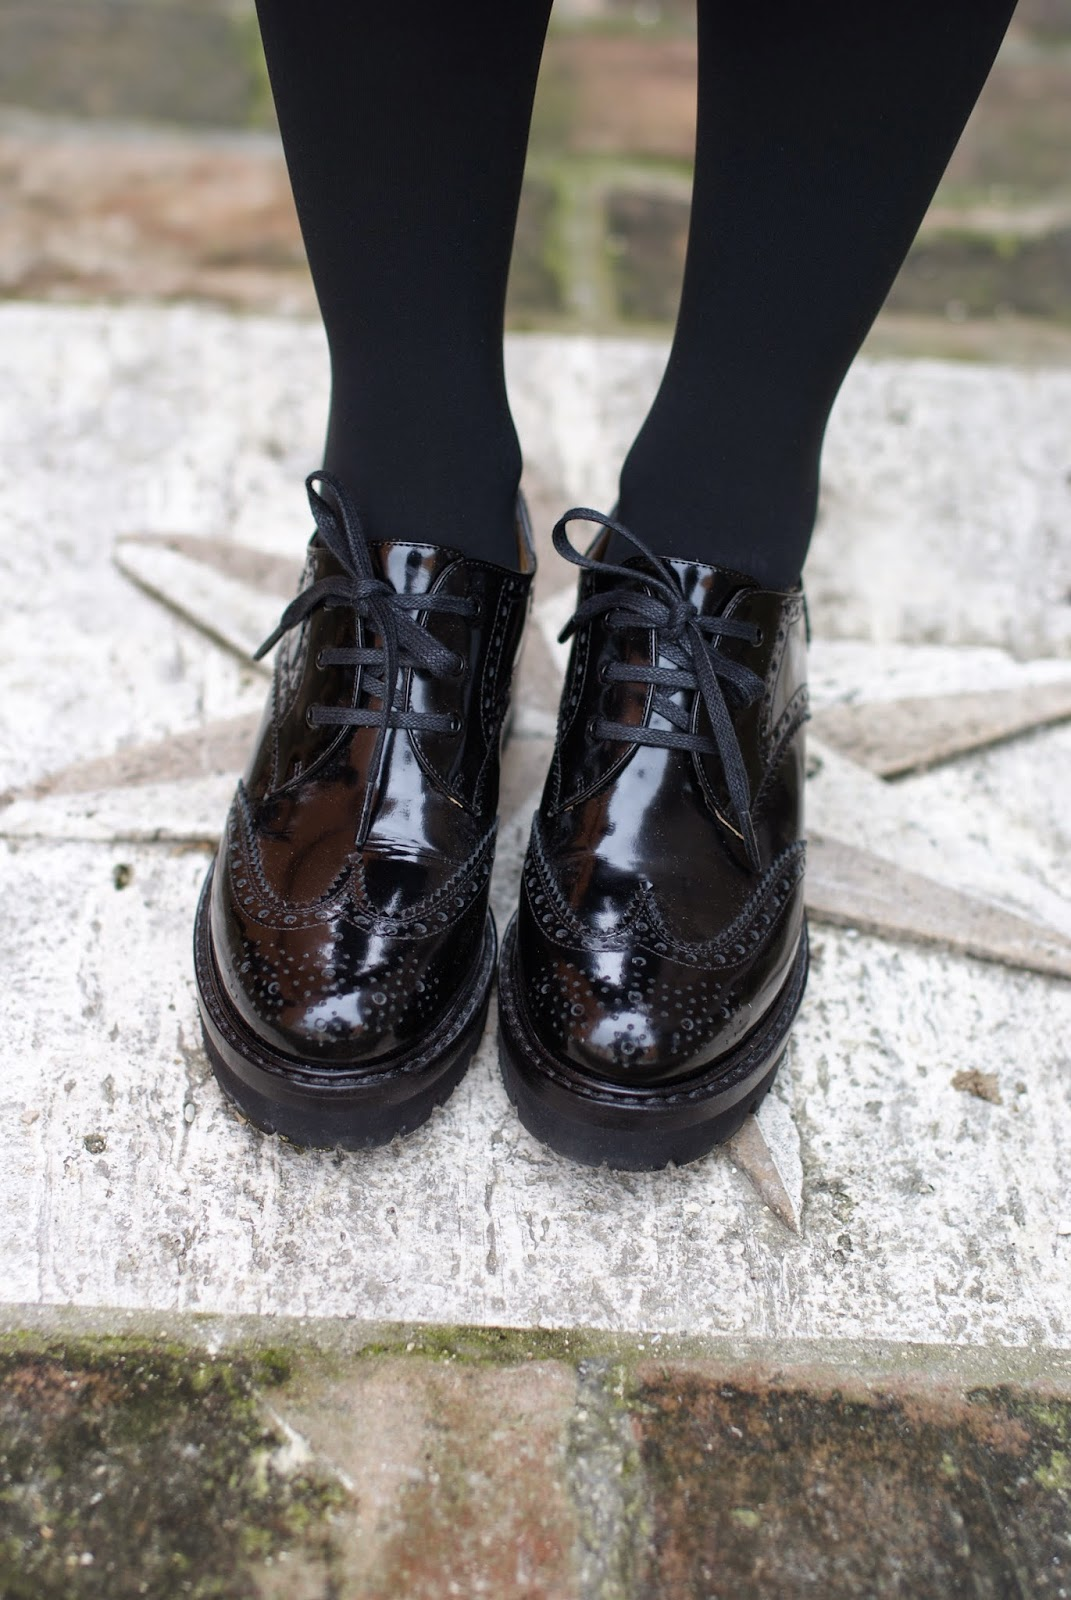 Nando Muzi brogues, scarpe stringate, patent leather brogues, Fashion and Cookies, fashion blogger